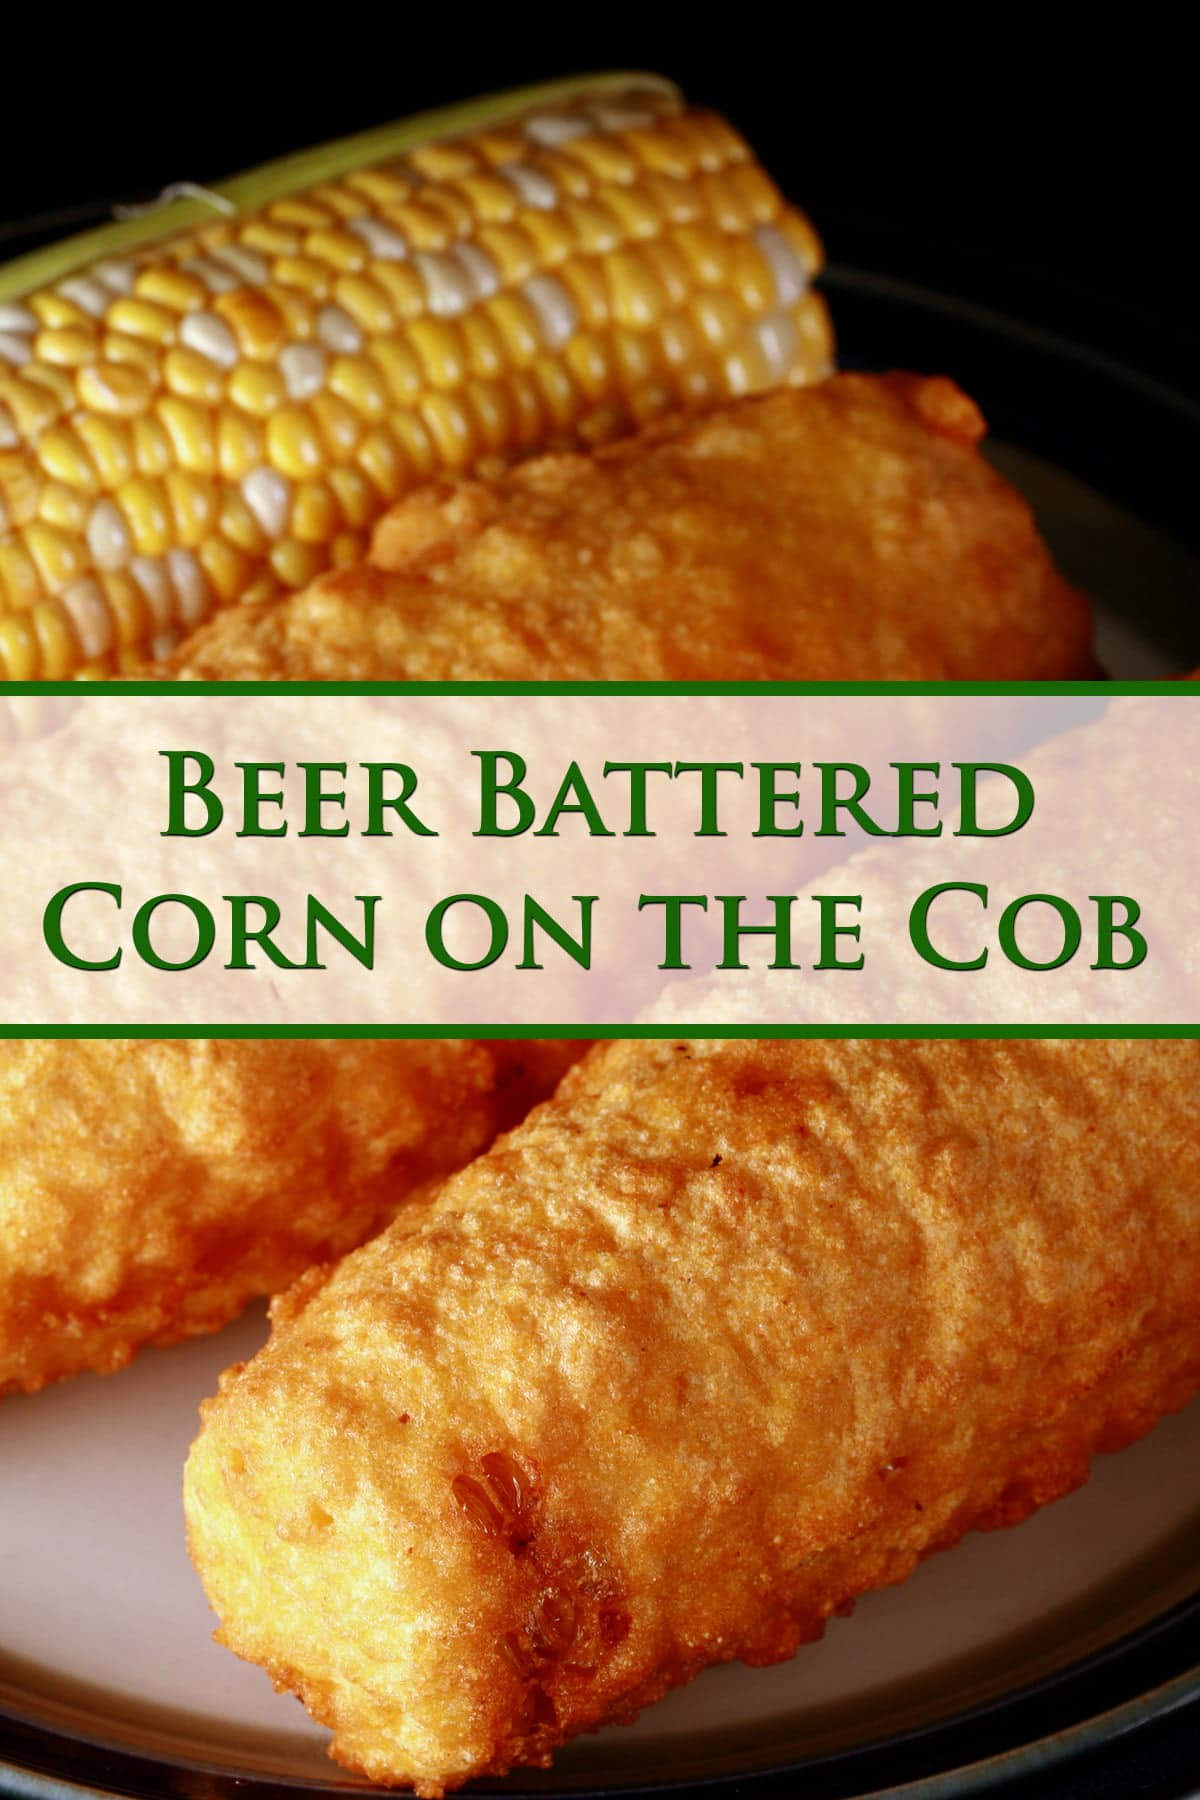 3 cobs of corn - 1 fresh, 2 battered and deep fried - are lined up on a plate.